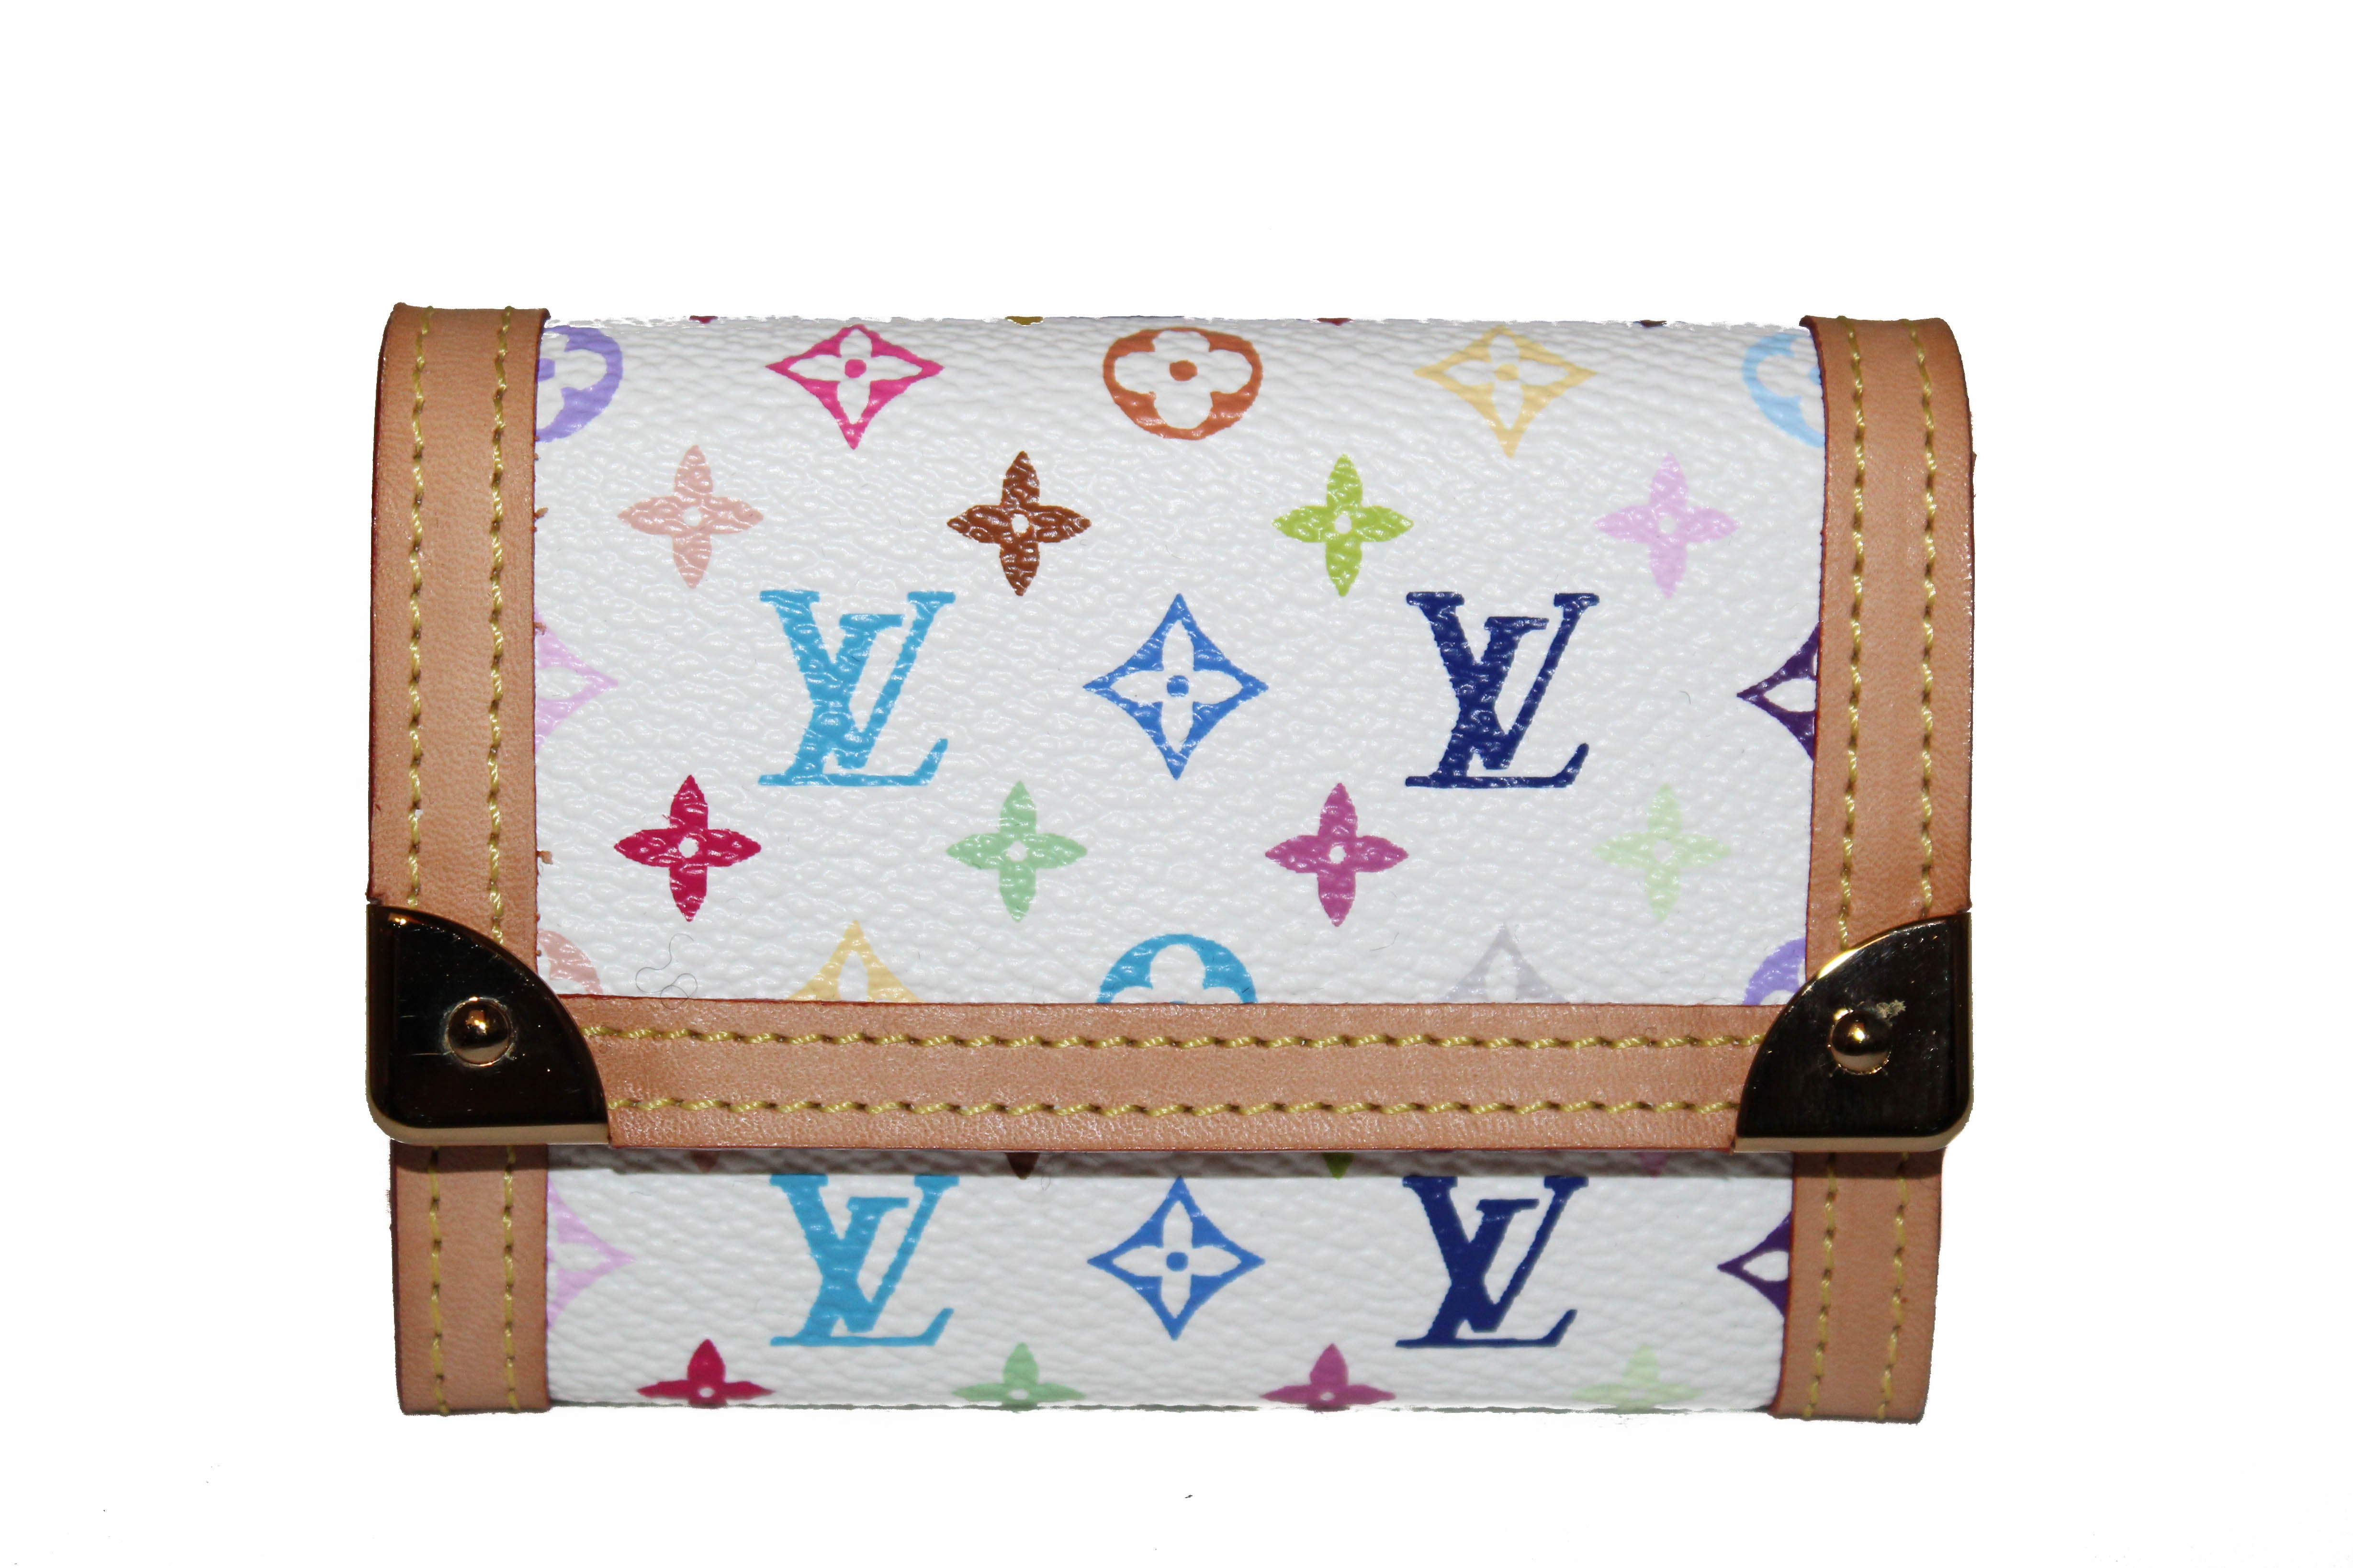 Authentic New Louis Vuitton White Multicolor Canvas Coin Card Holder Small Wallet